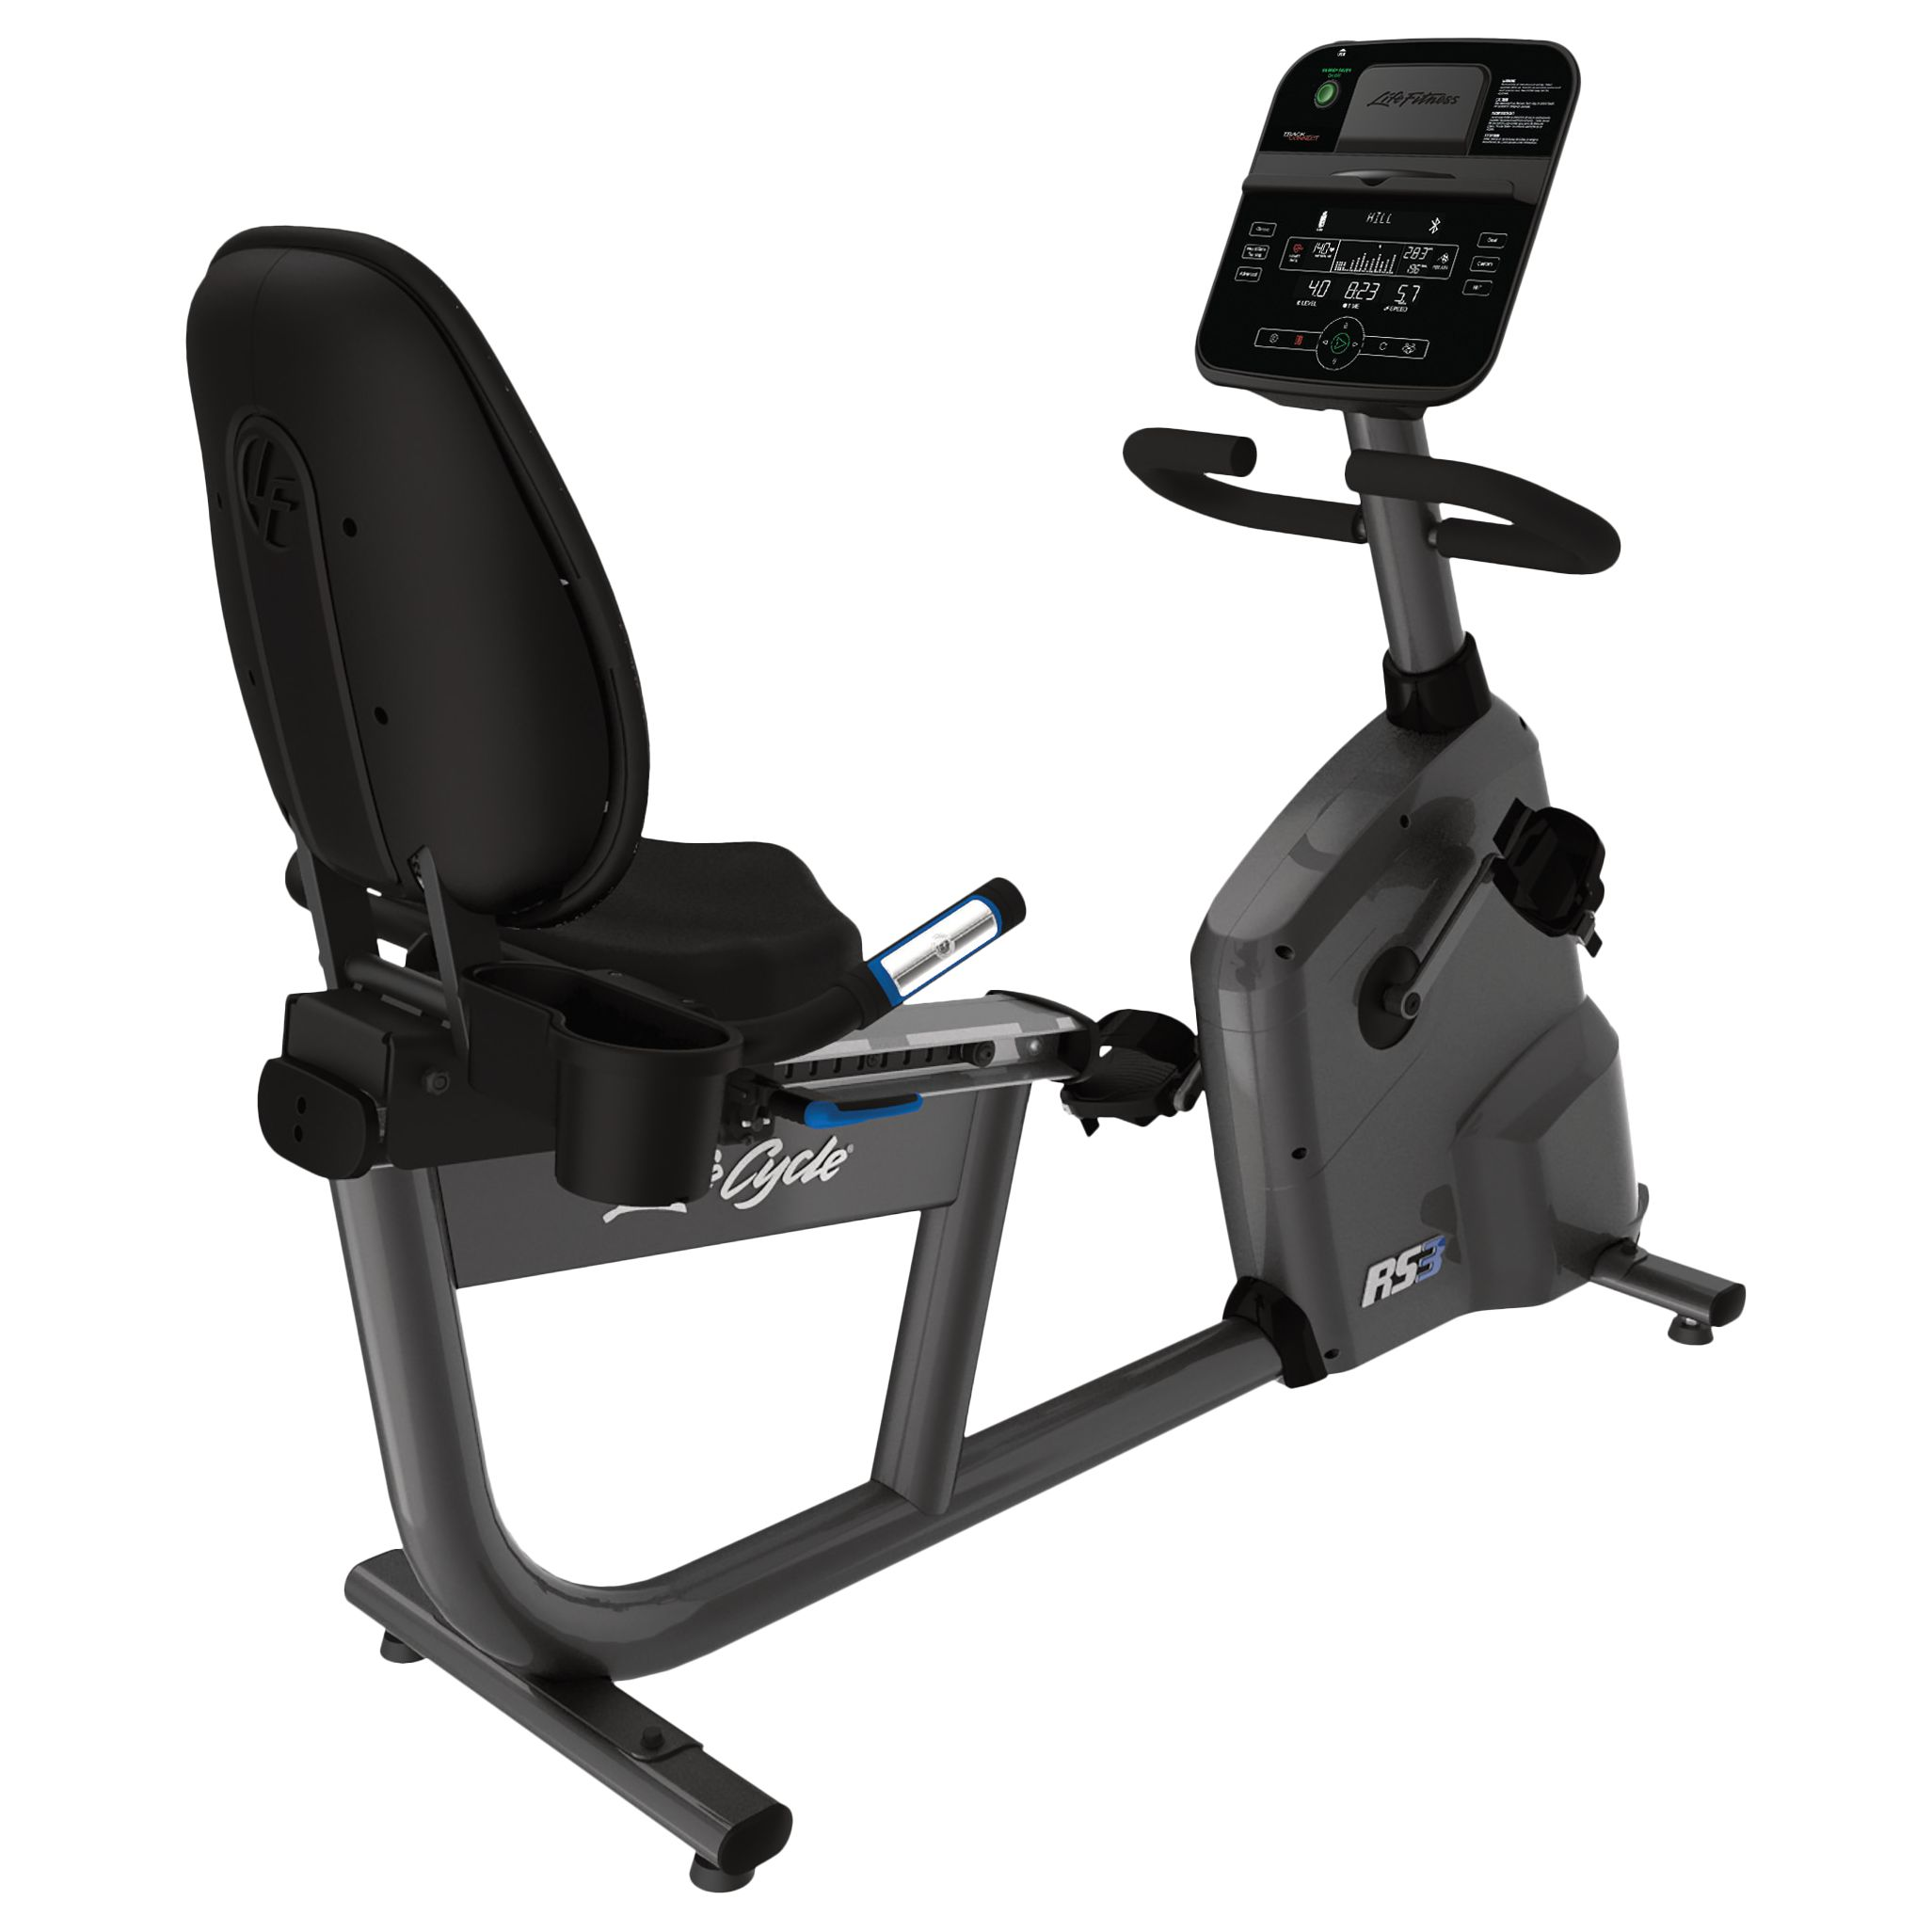 Life Fitness Life Fitness RS3 Lifecycle Recumbent Exercise Bike with Track Connect Console